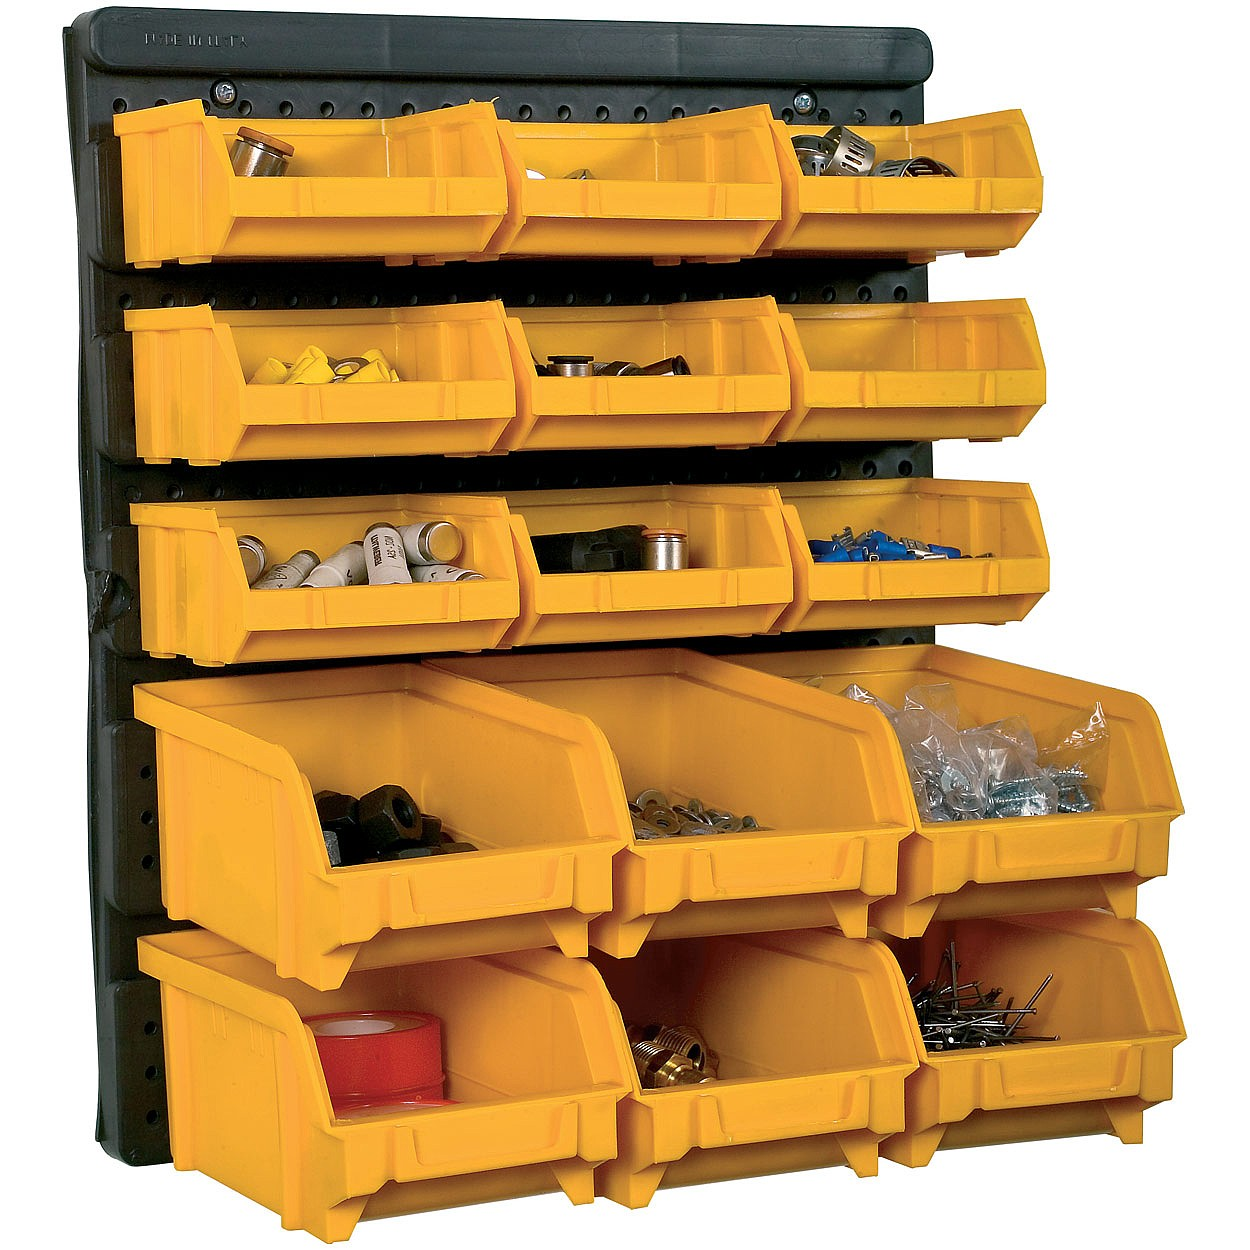 Image of 15 Bin Tool Storage